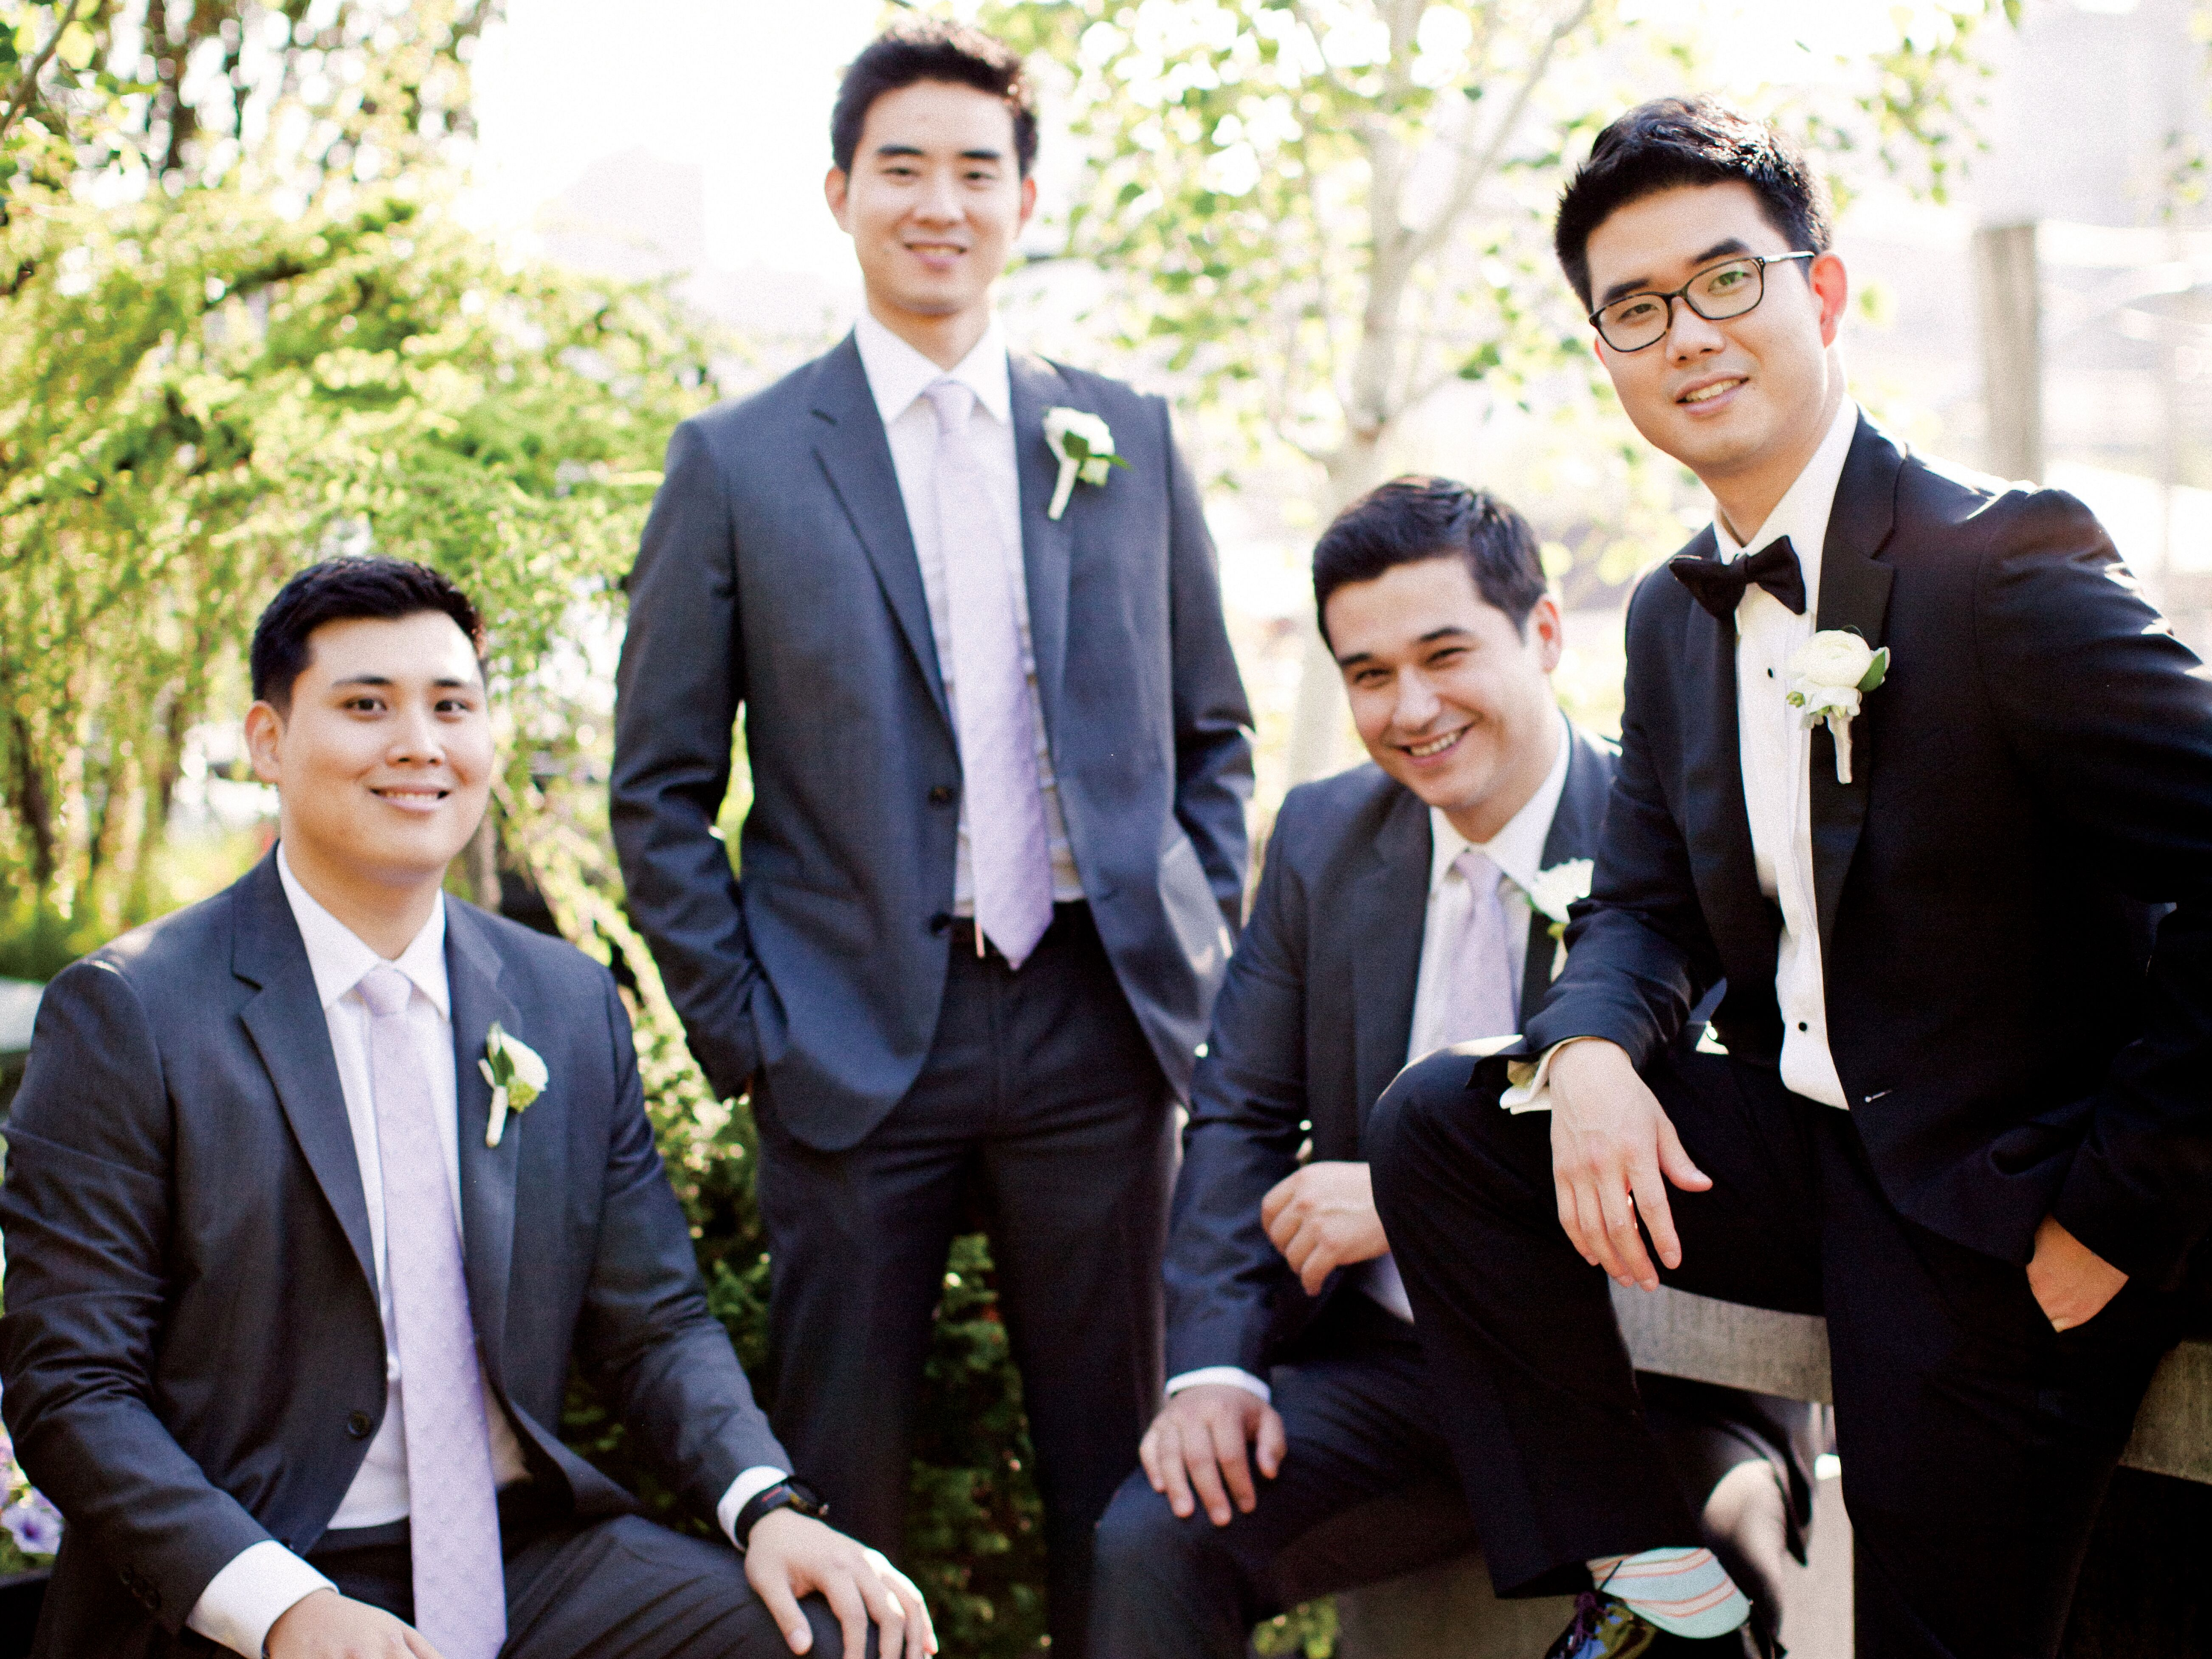 groom guys Groom + groomsmen the groom and groomsmen do have some duties to fulfill when it comes to planning the wedding get help finding vendors for a tuxedo rental or suit rental, and style tips for colorful socks and vintage suspenders.